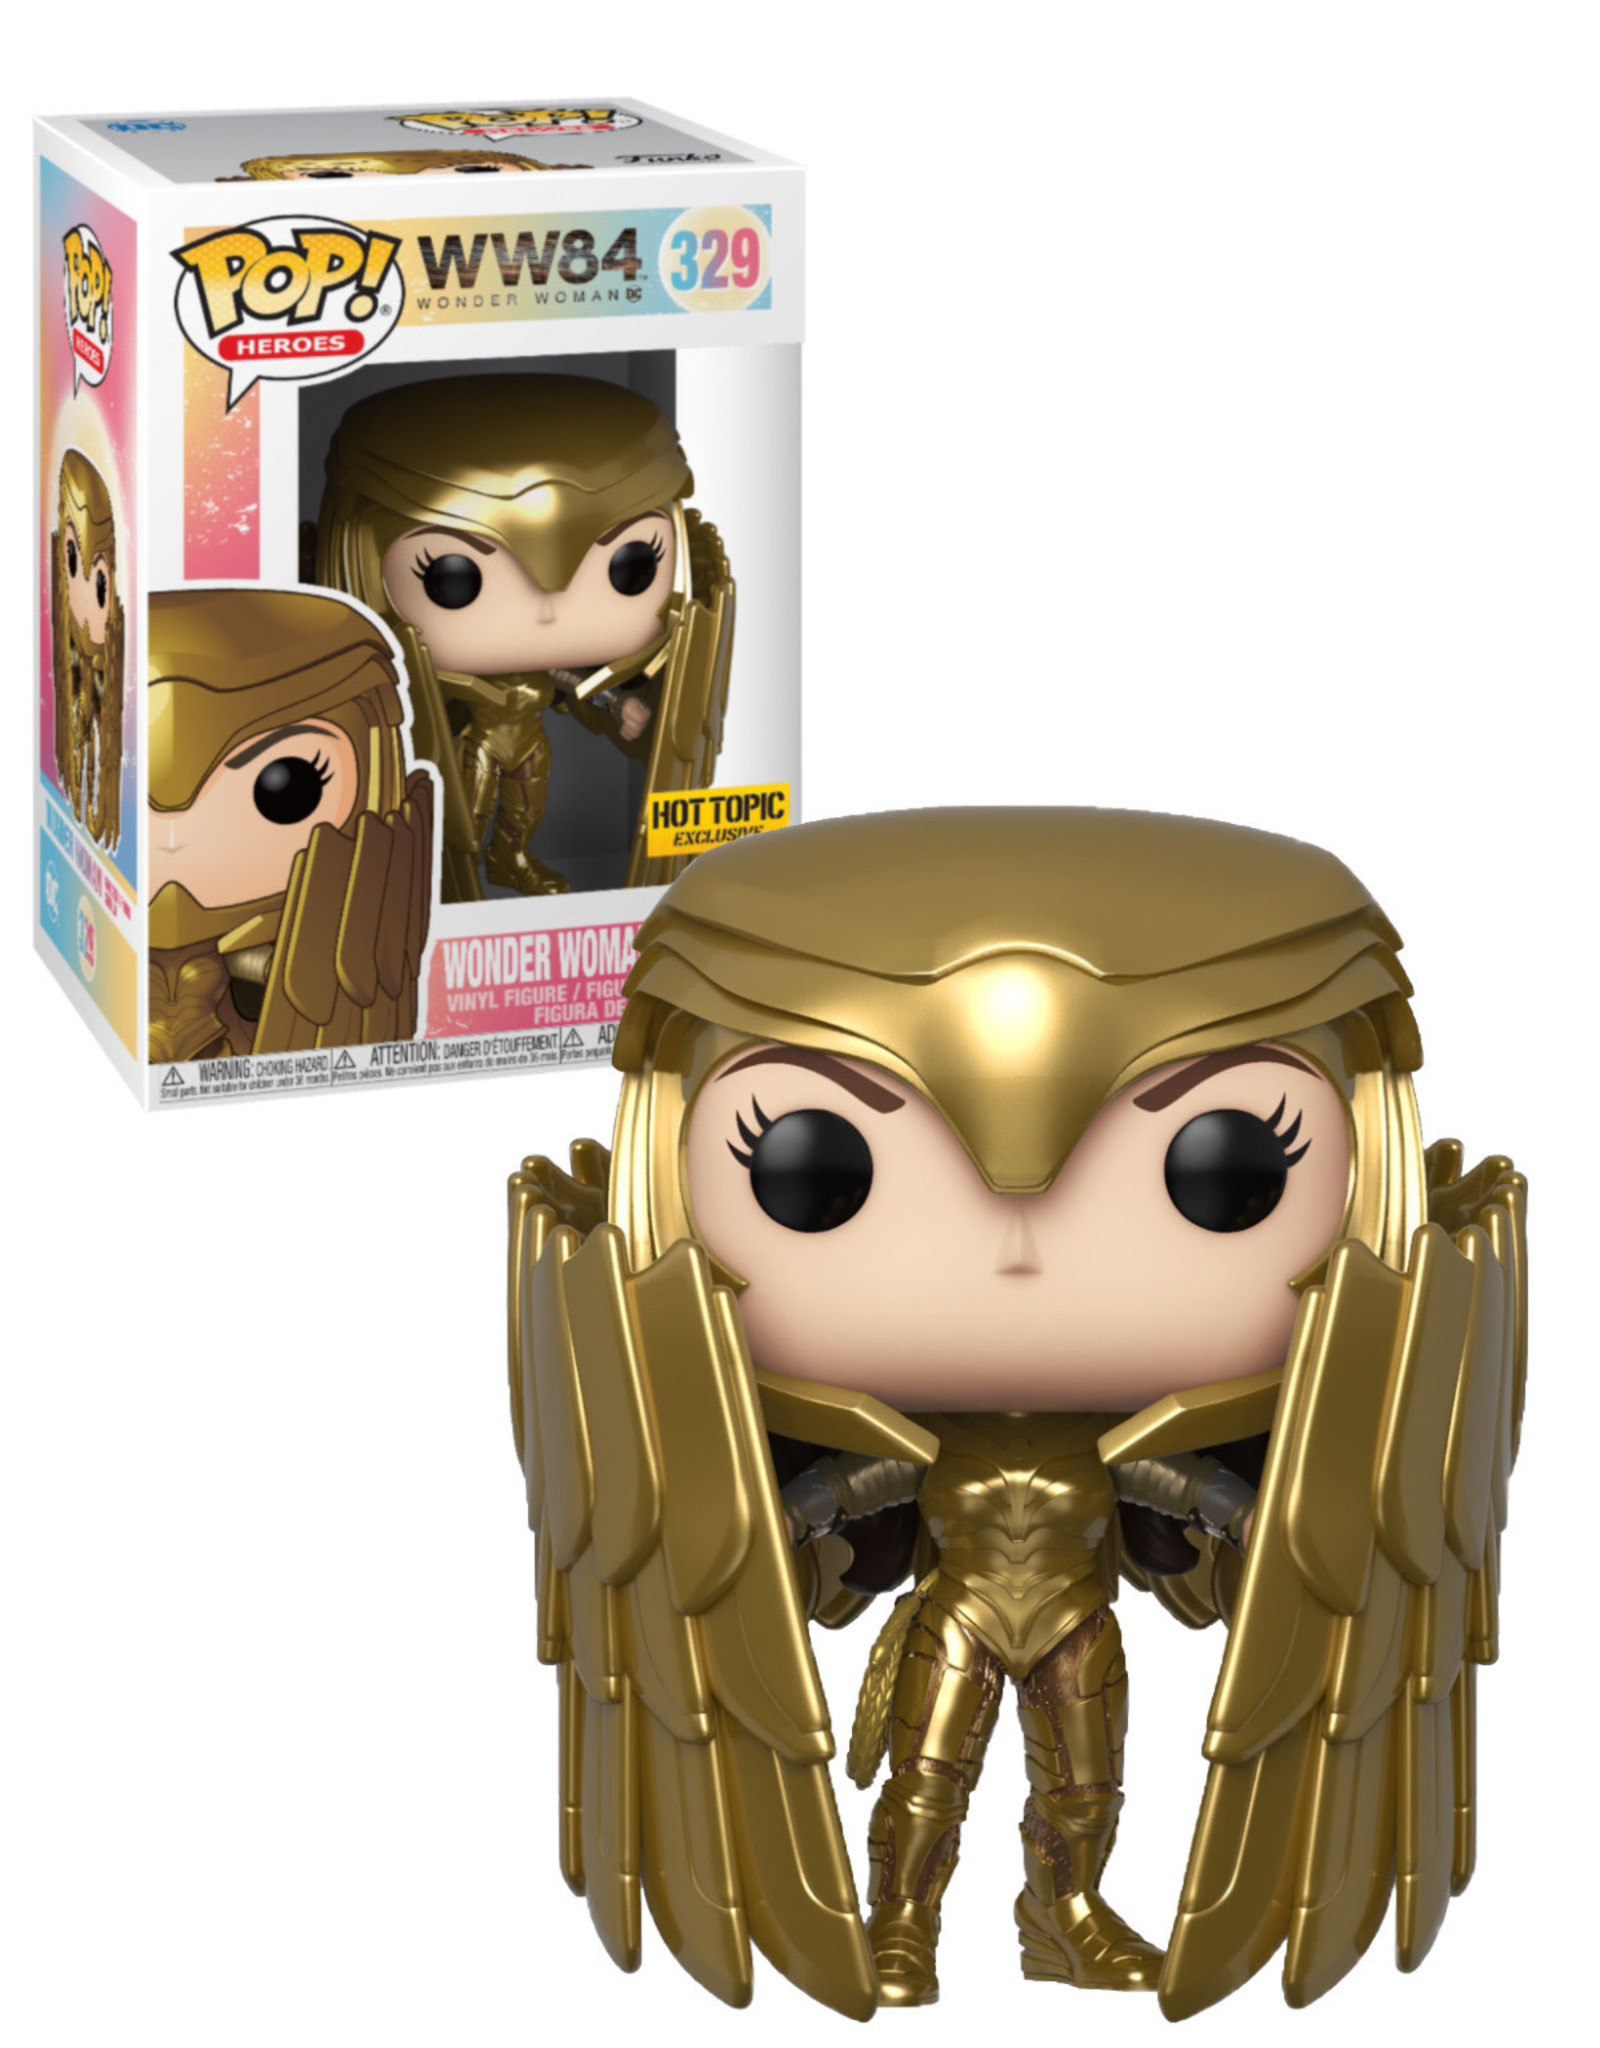 Dc comics WW84 329 ( Funko Pop ) Wonder Woman